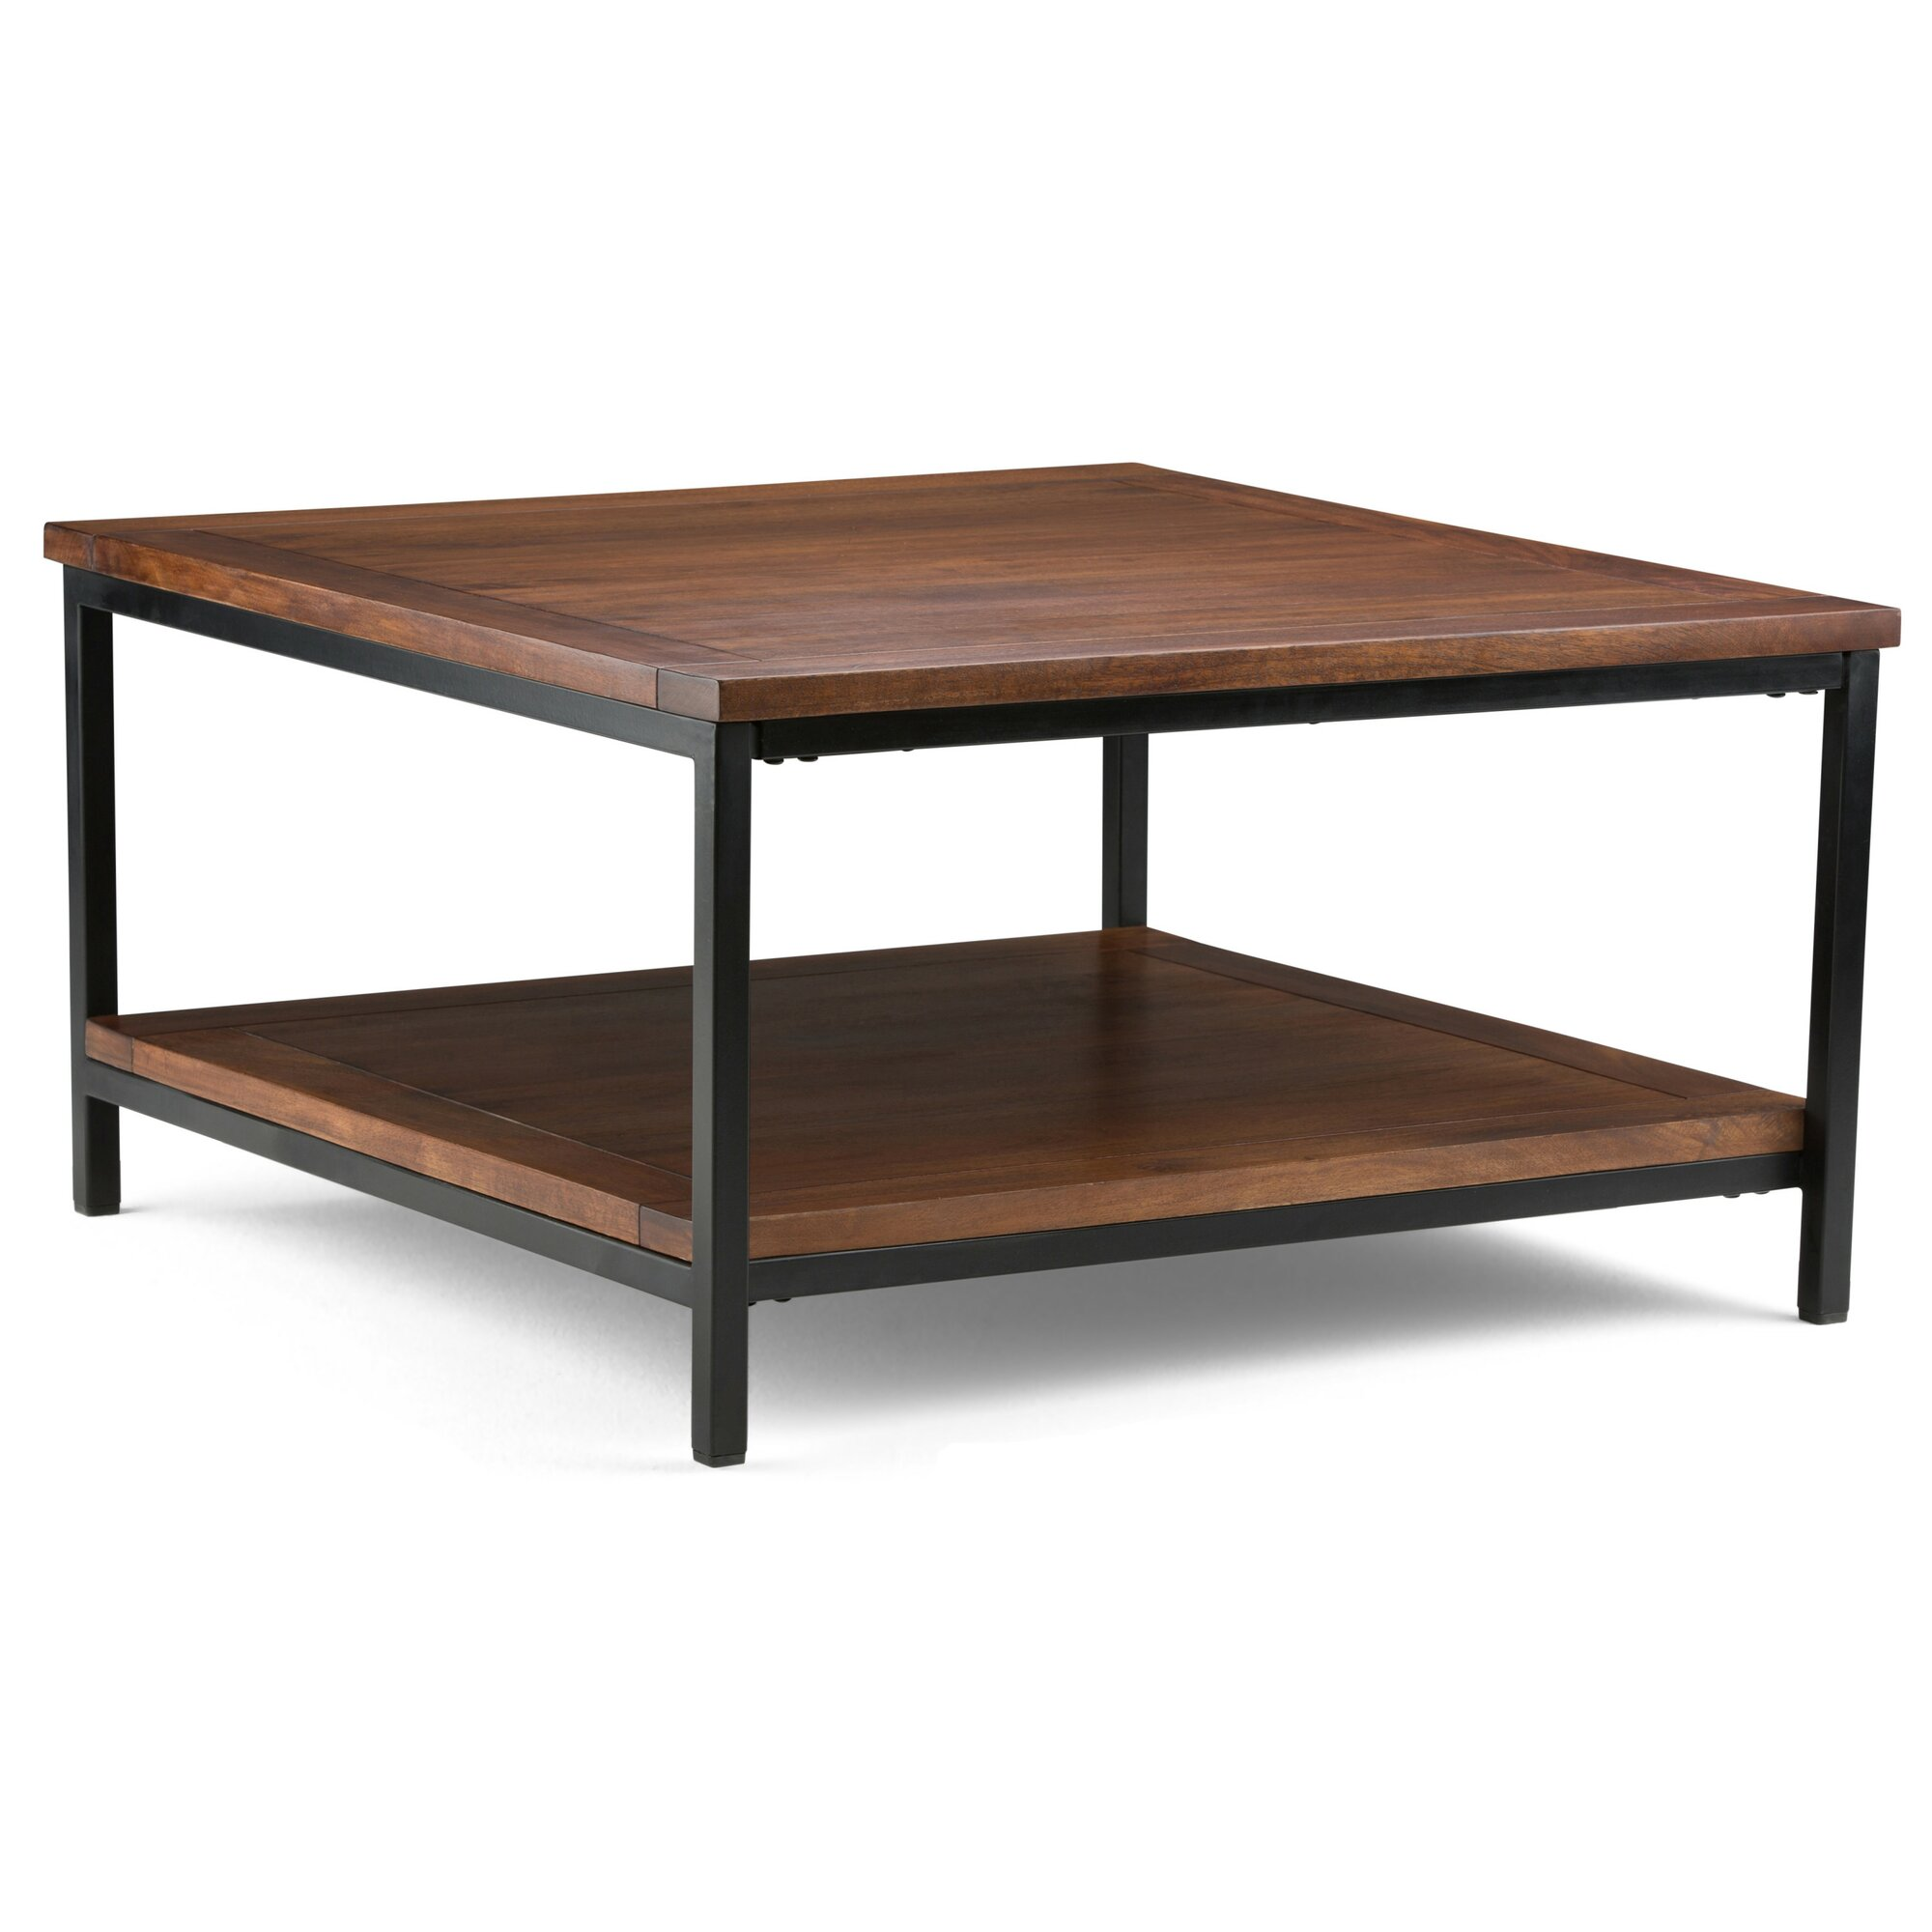 Simpli home skyler 34 square coffee table wayfair for Regulation 85 table a